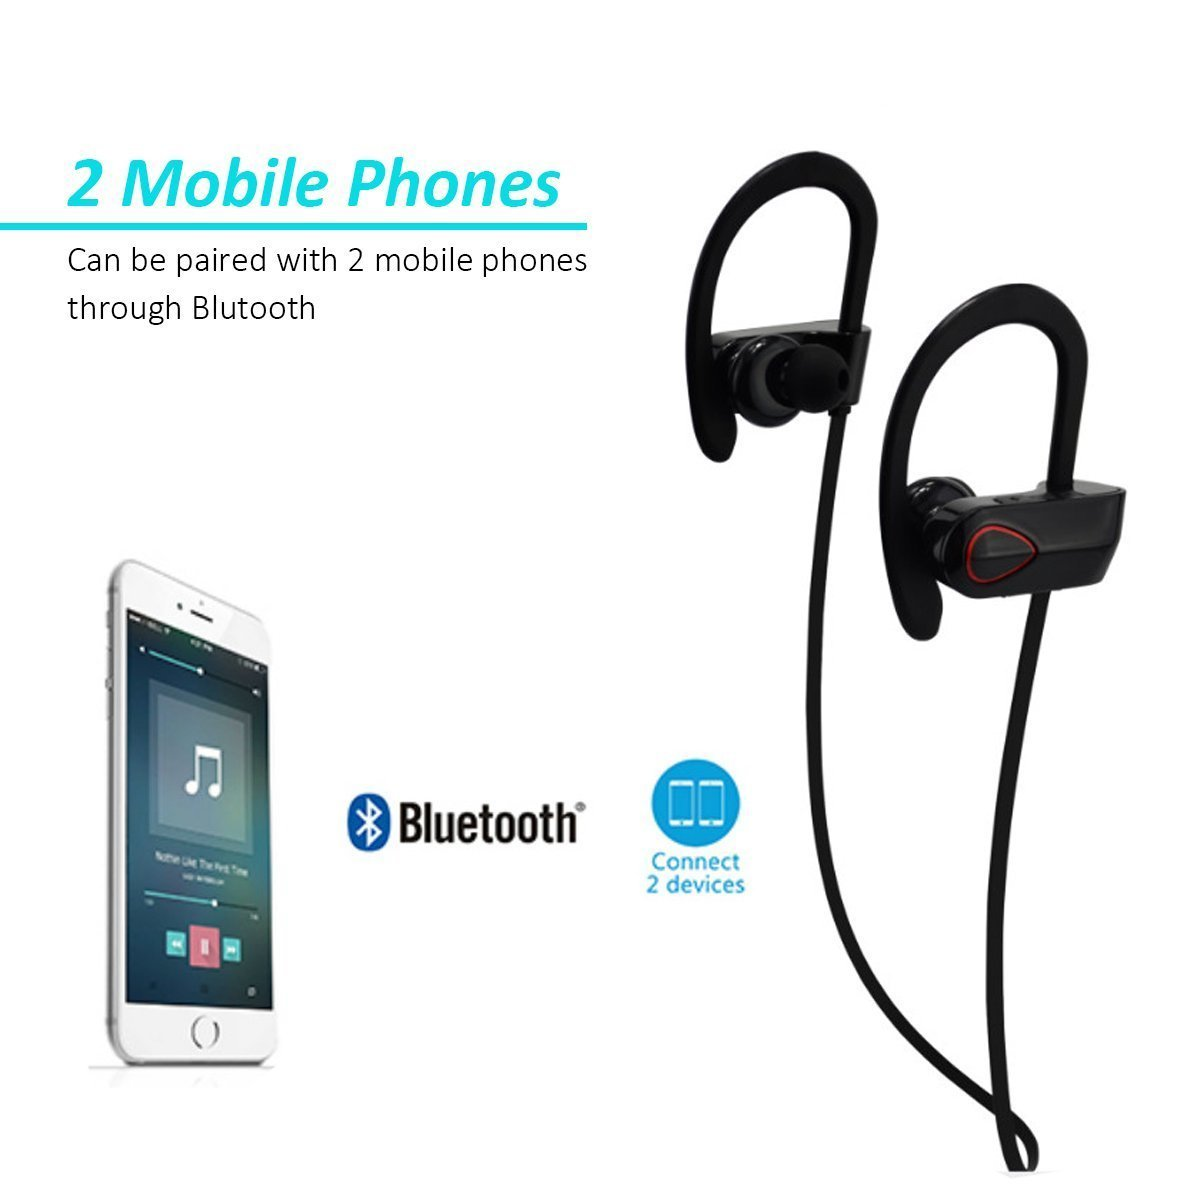 Bluetooth Wireless Headset Walmart: J-Tech Digital Inc On Walmart Seller Reviews